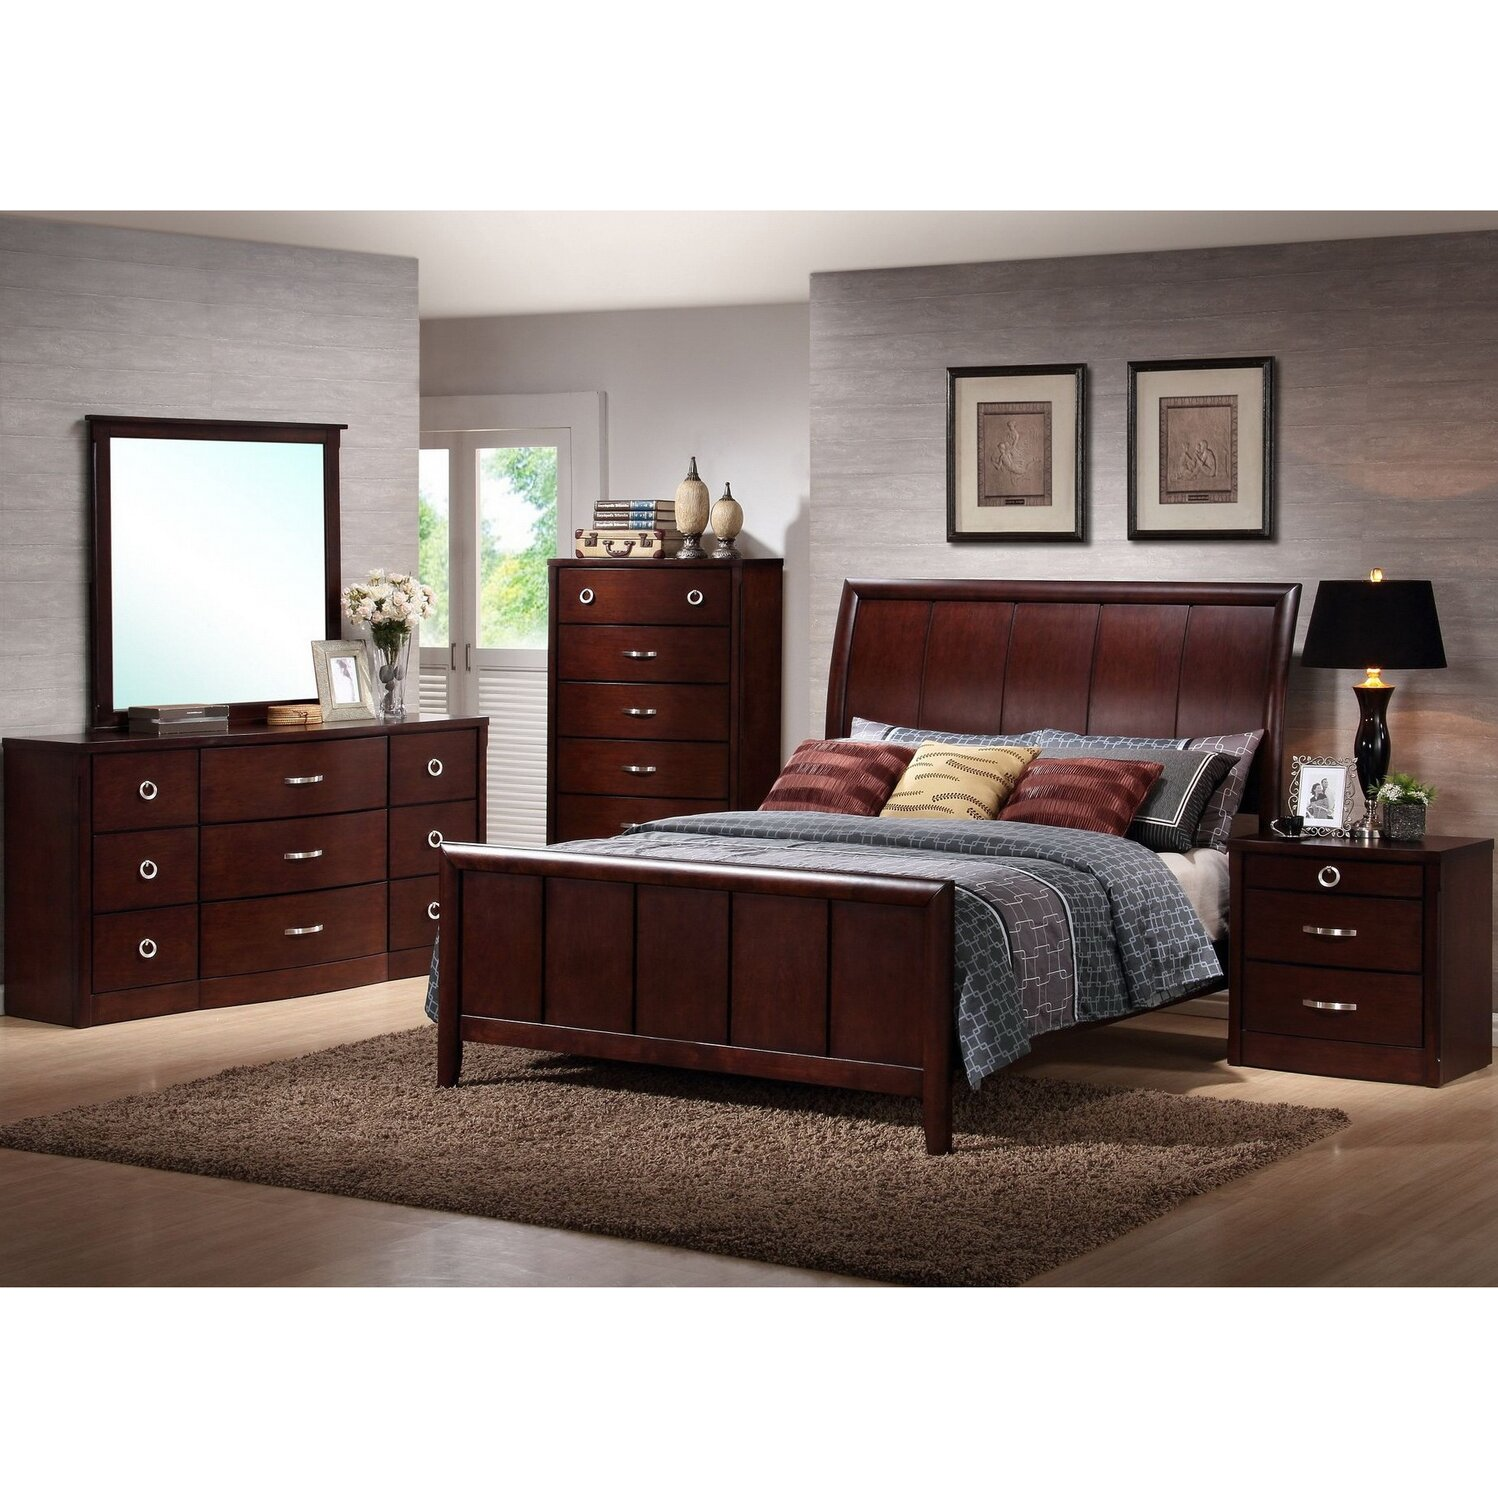 Wholesale Interiors Baxton Studio Sleigh 5 Piece Bedroom